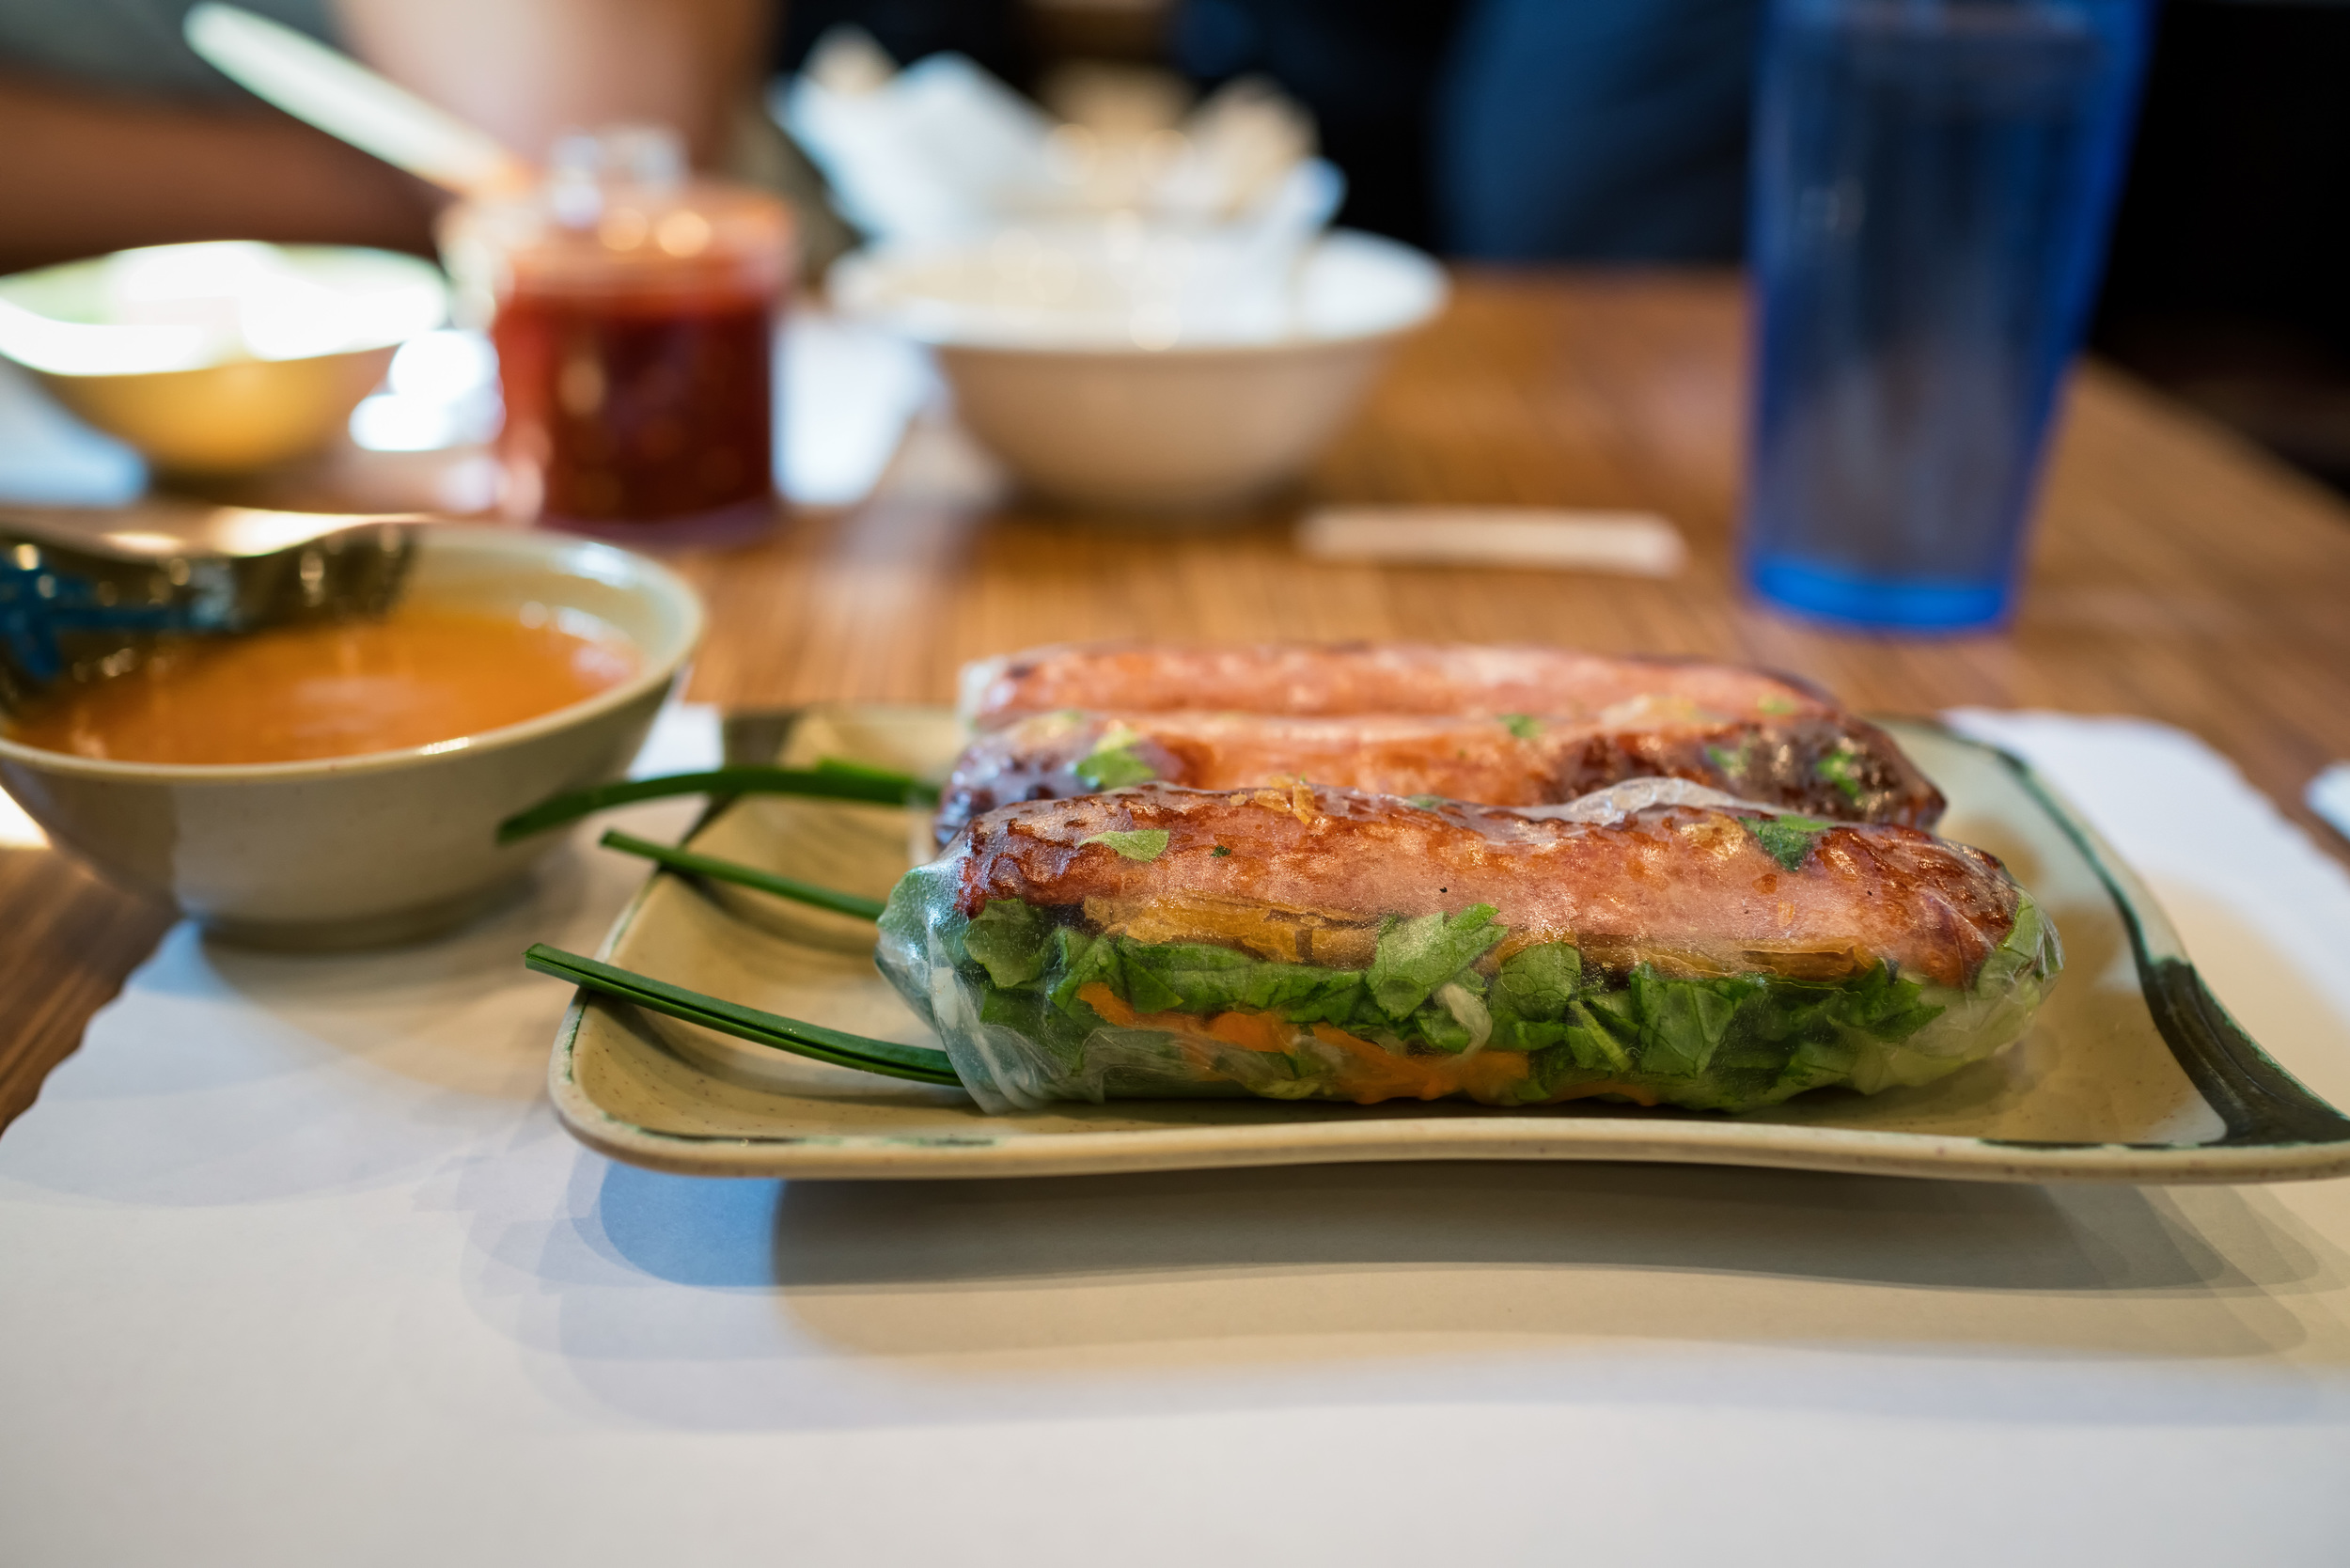 Incredible Vietnamese food can be found in Little Saigon (Brodard, in Westminster).